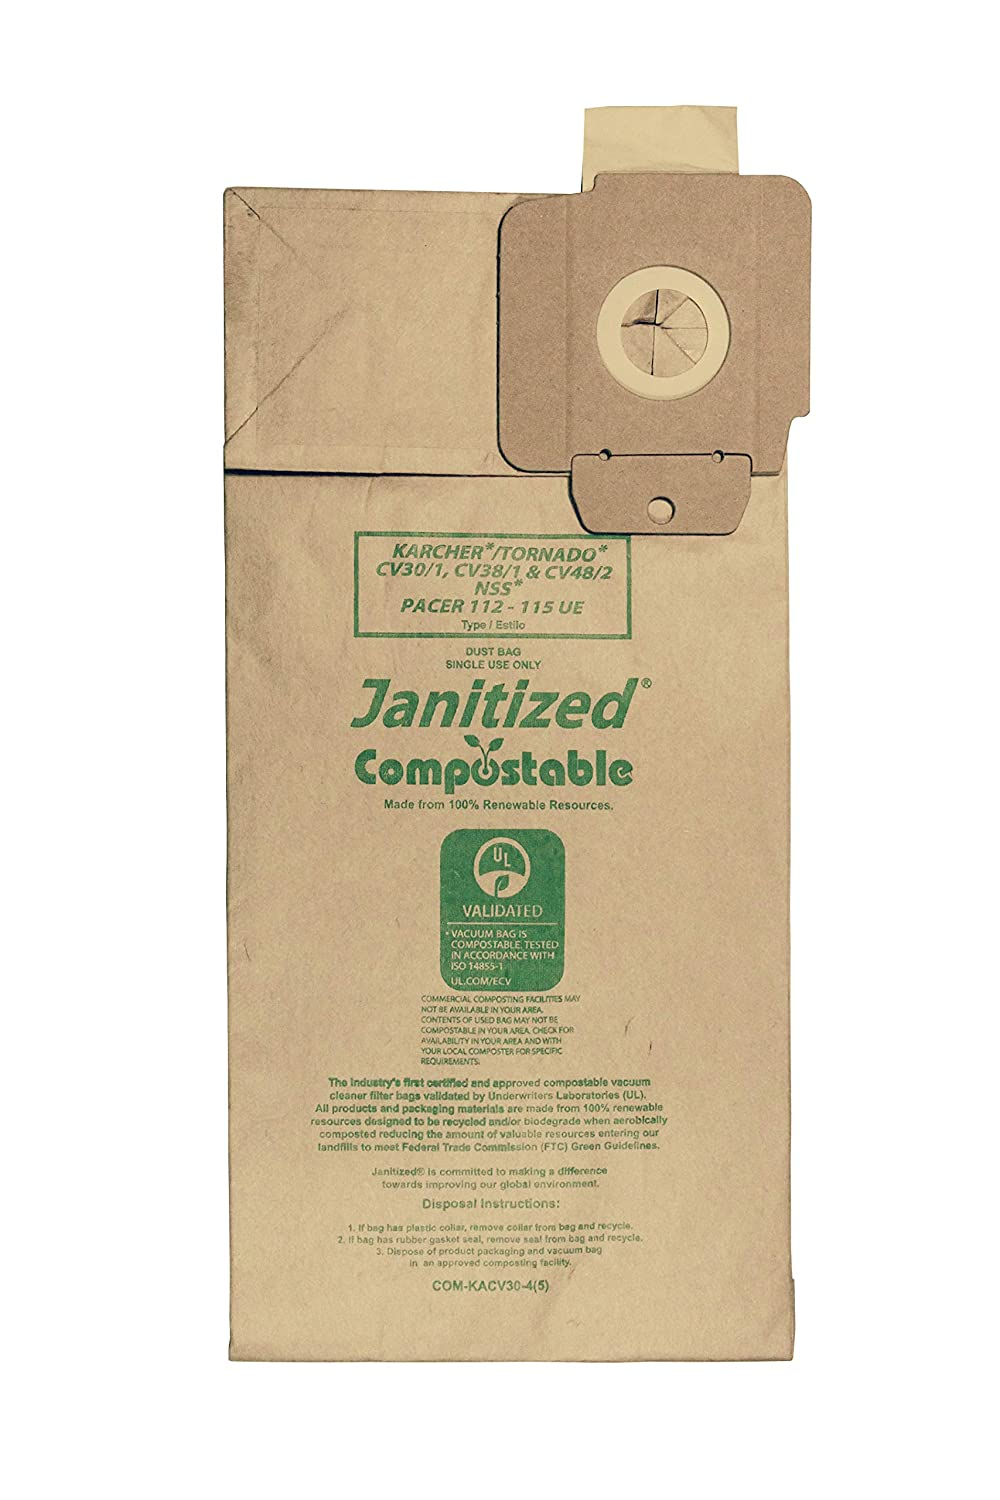 Janitized COM-KACV30-4(5) Compostable Paper Premium Replacement Commercial Vacuum Bag for Karcher/Tornado CV30/1 and CV38/1 & NSS Pacer 112 & 115 UE vacuums (Pack of 5)